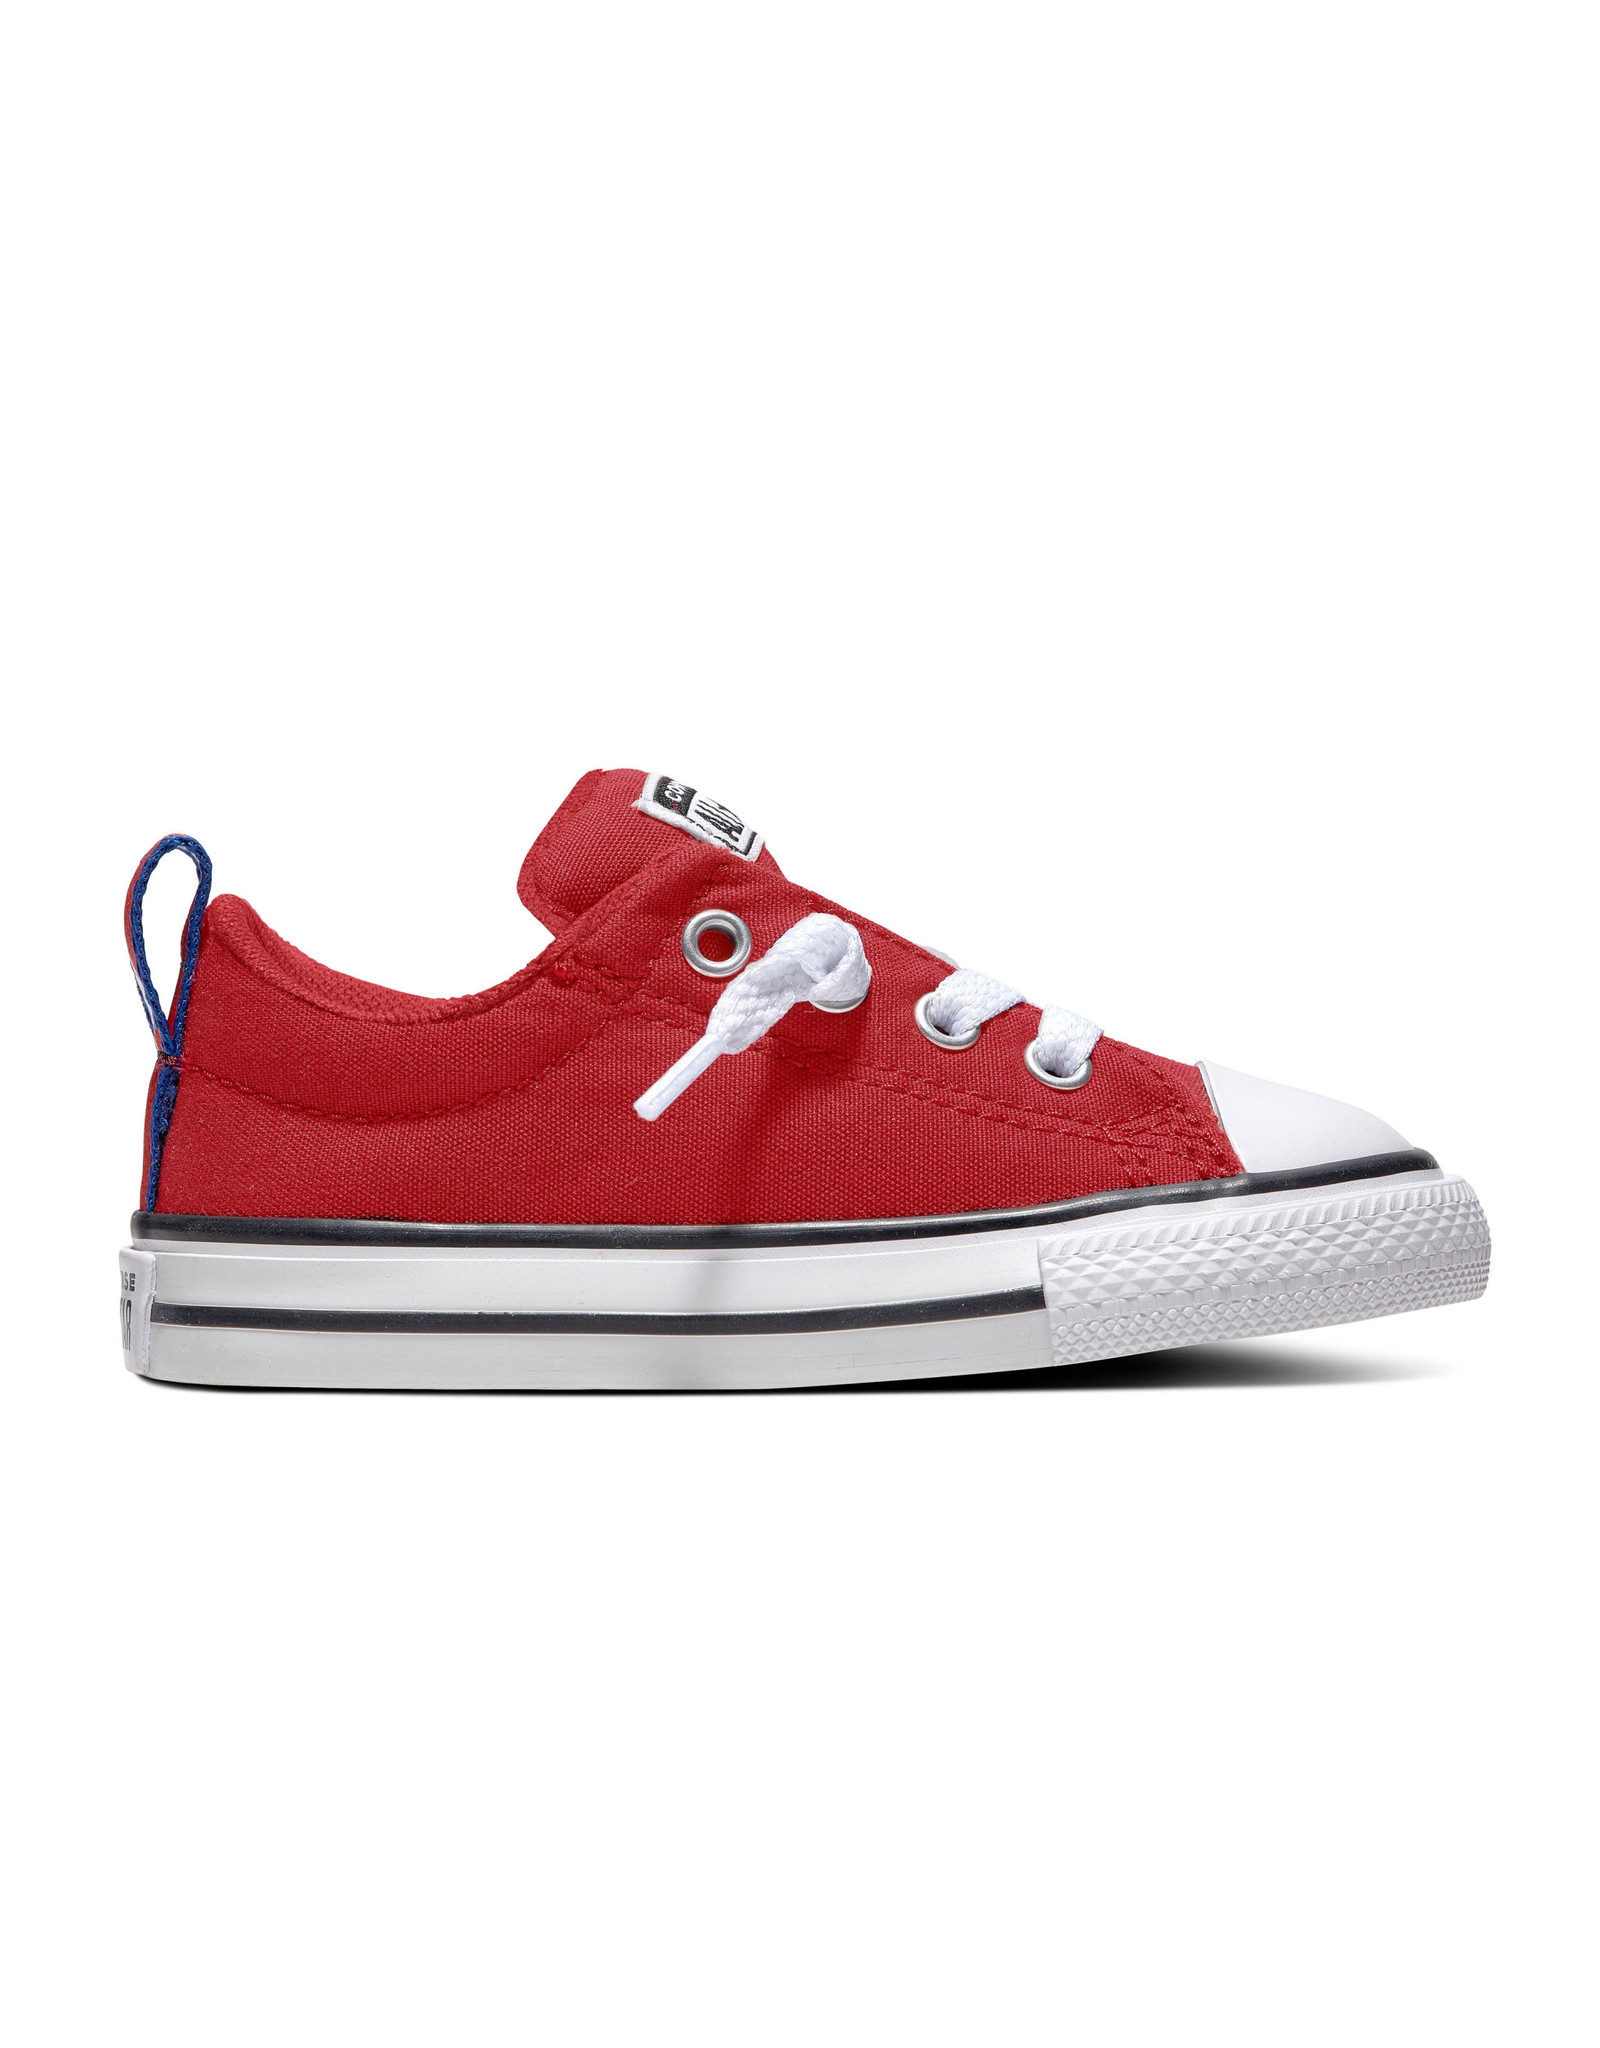 CONVERSE CHUCK TAYLOR ALL STAR STREET SLIP ENAMEL RED/BLACK/WHITE CK95SE-763526C